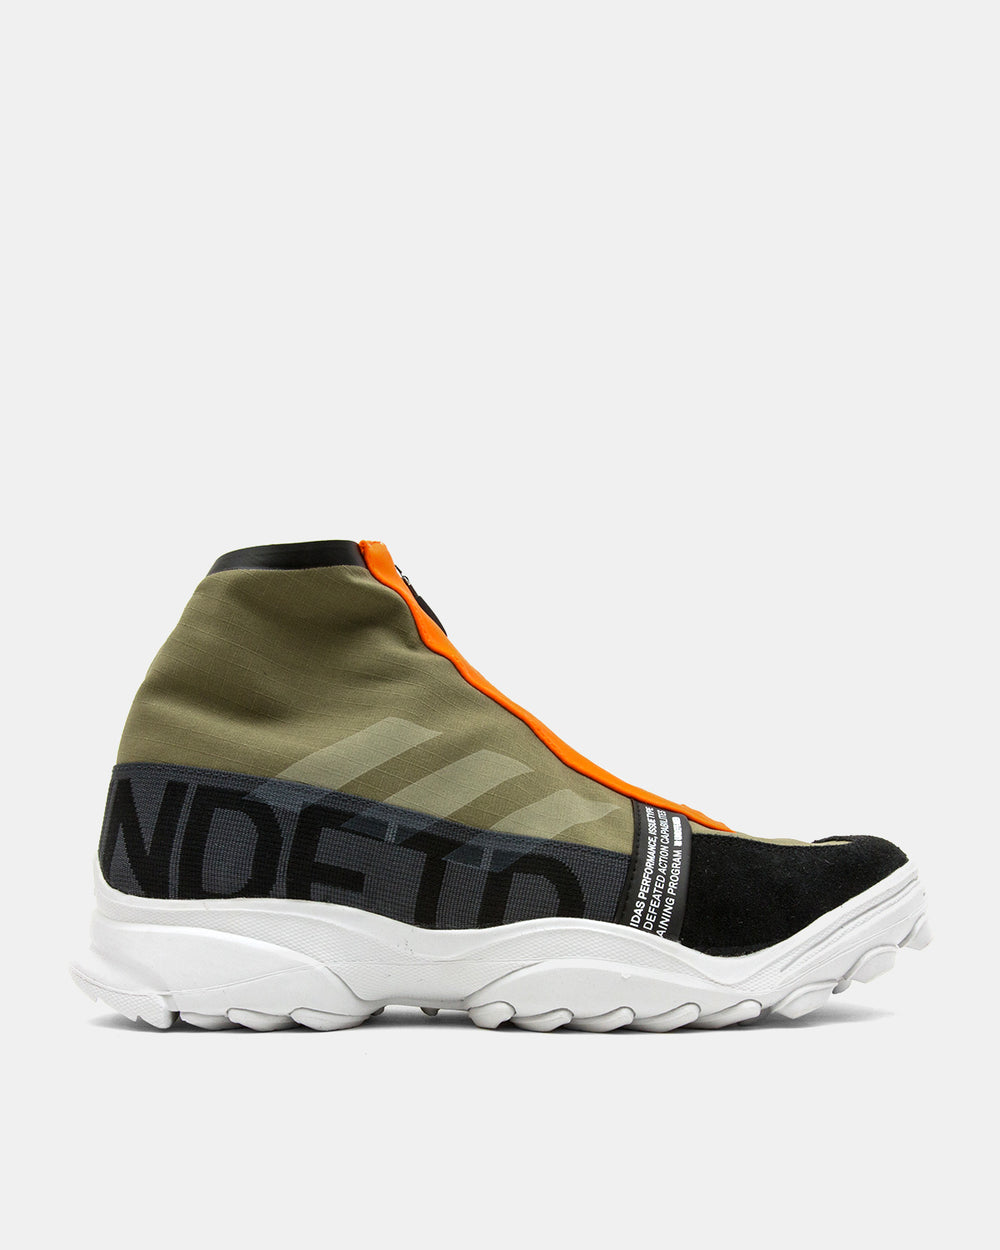 adidas X Undefeated GSG9 High-Top (Olive Grey|Orange)